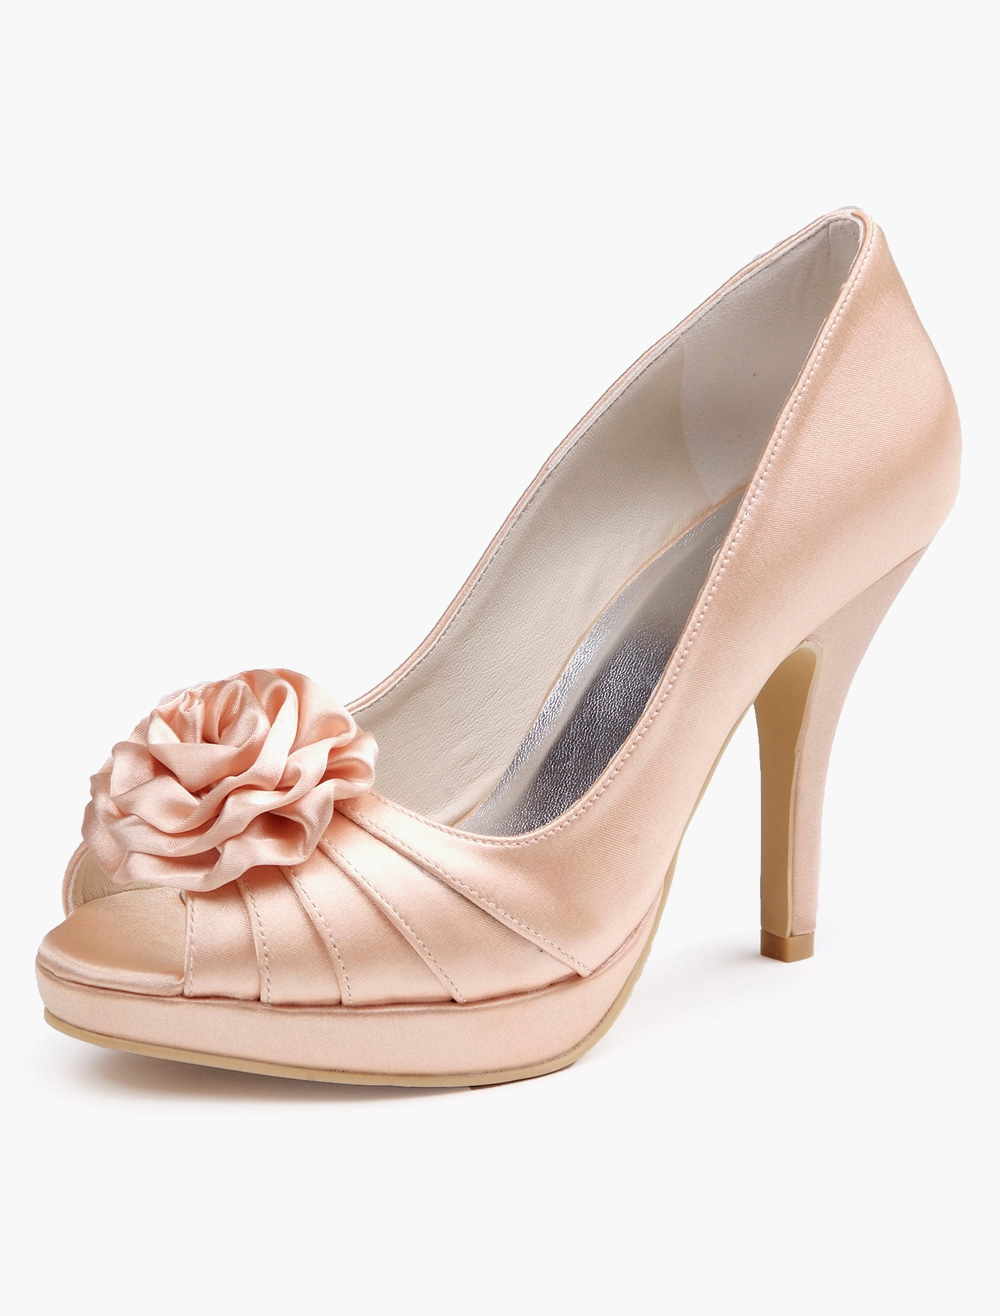 Buy Pleated Slip-On Peep Toe Silk And Satin Evening and Bridal Platforms for $53.99 in Milanoo store